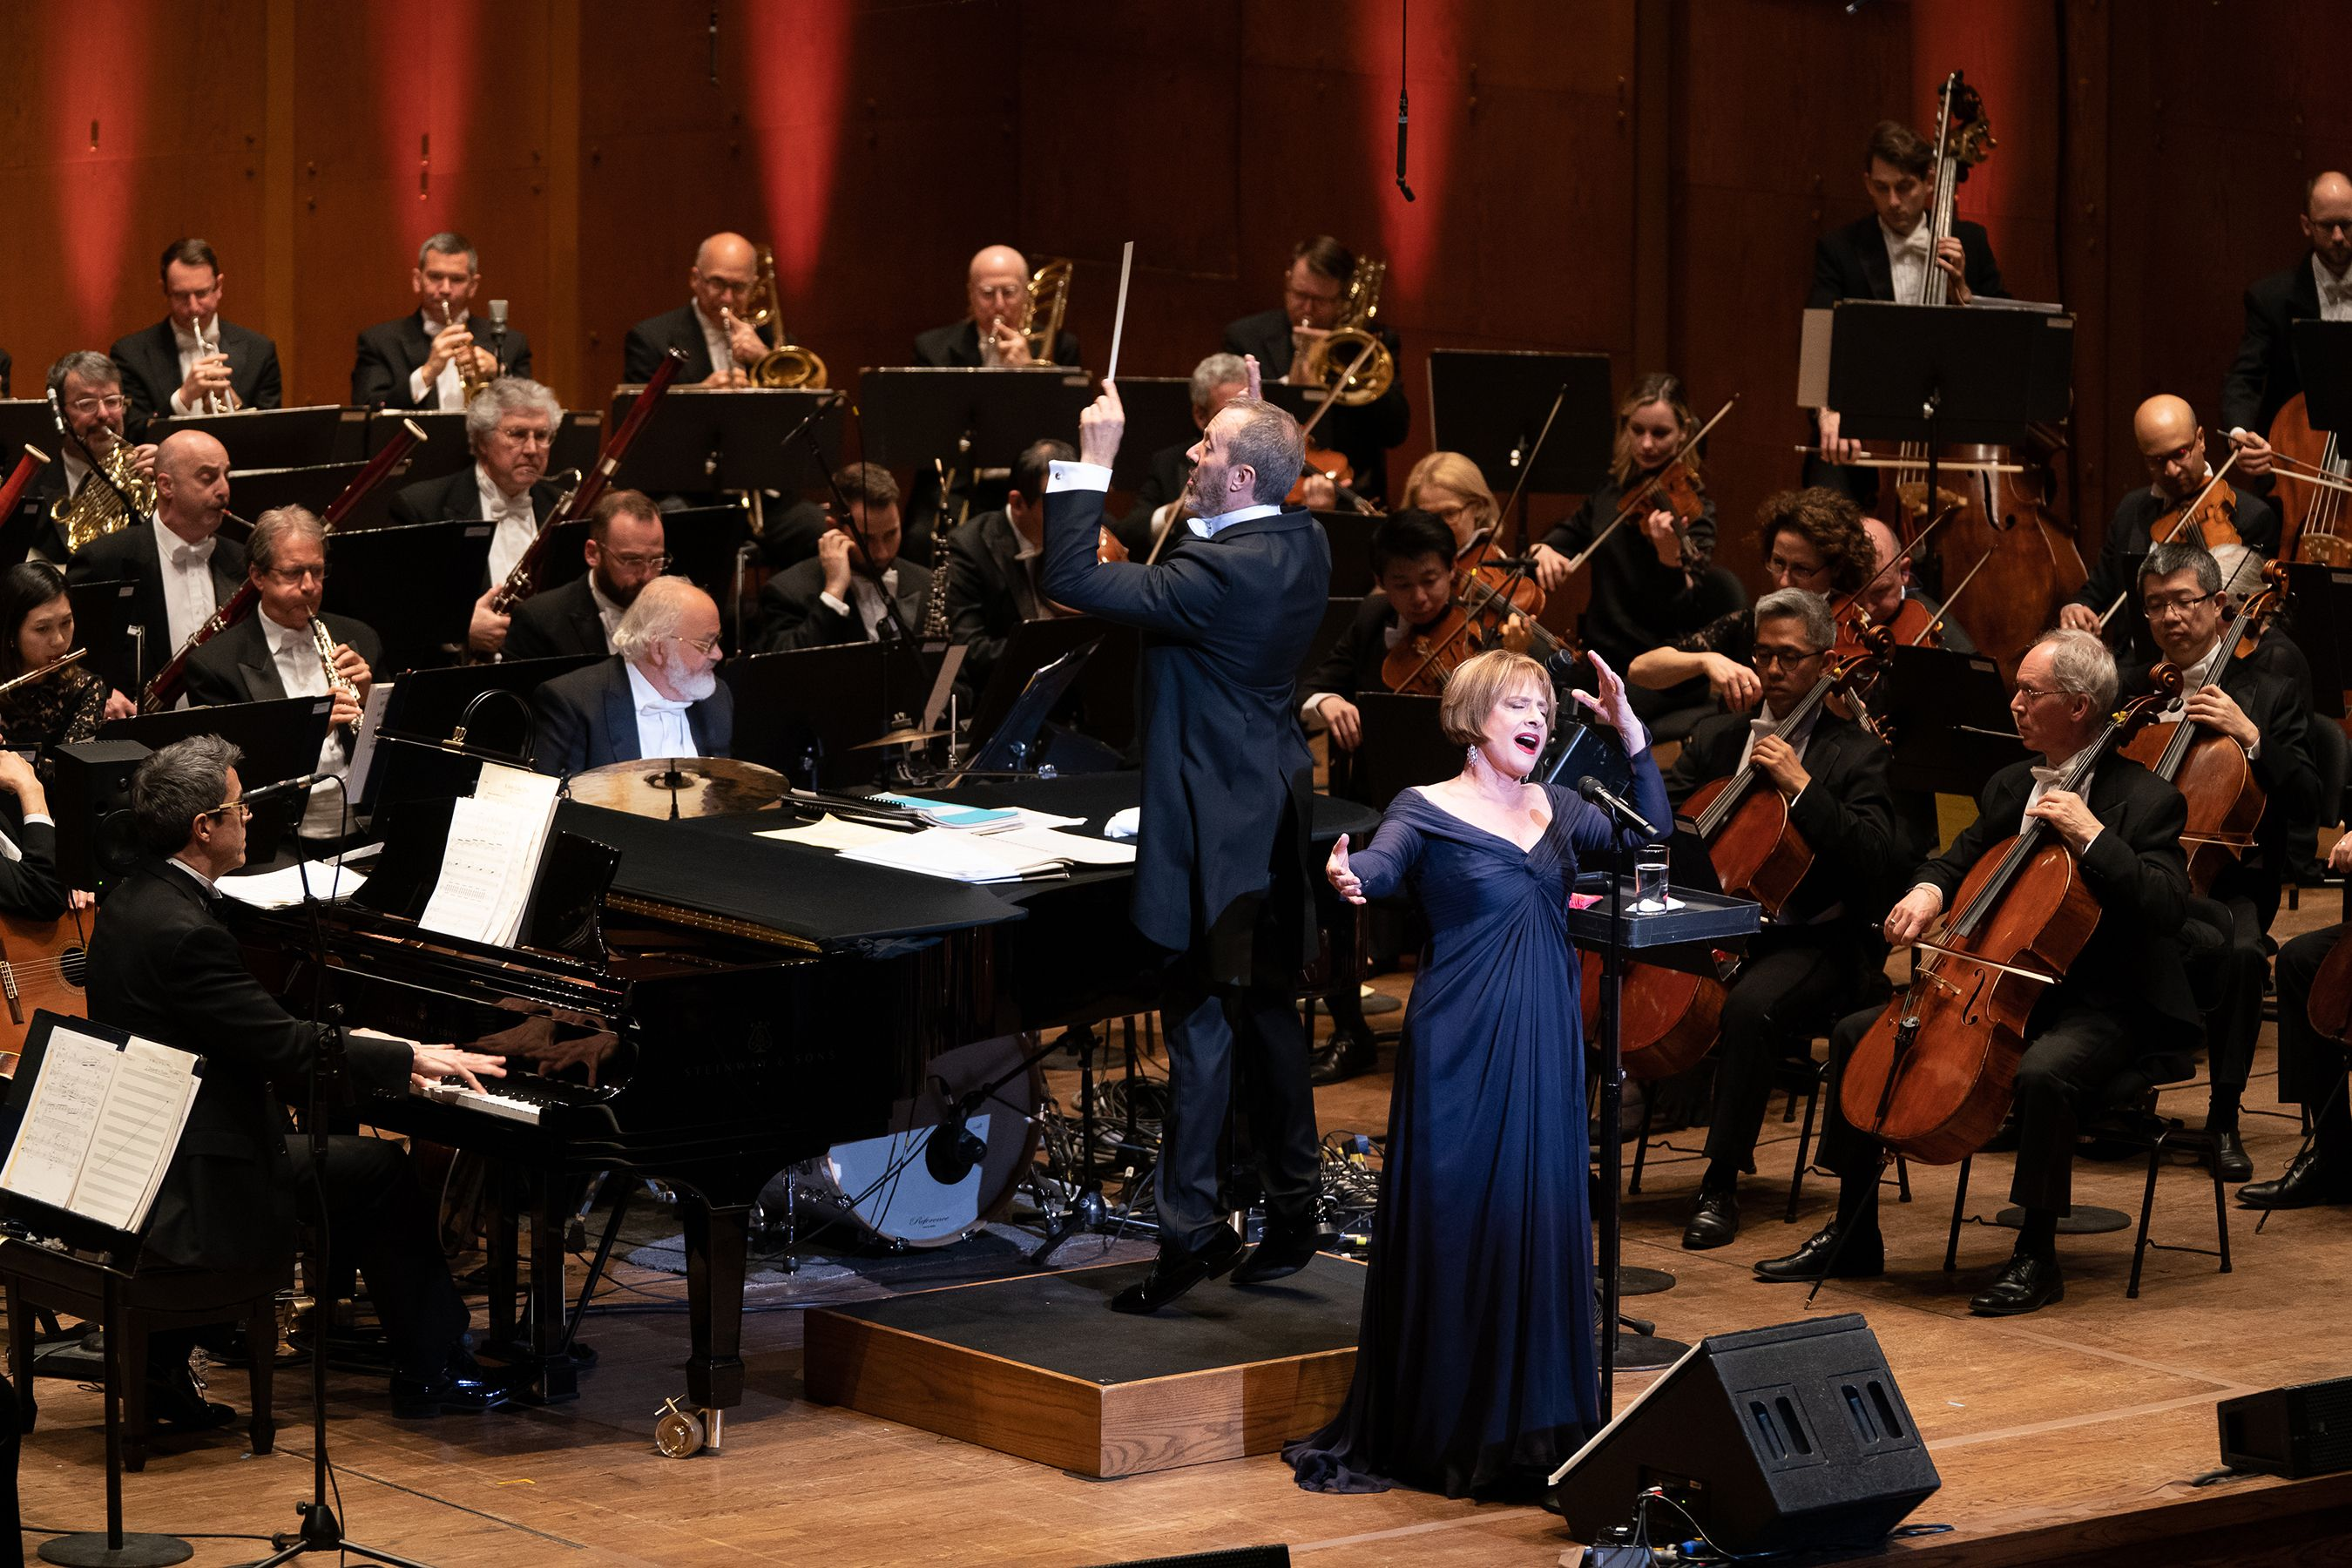 Patti LuPone and Bridget Everett Duet at New York Philharmonic